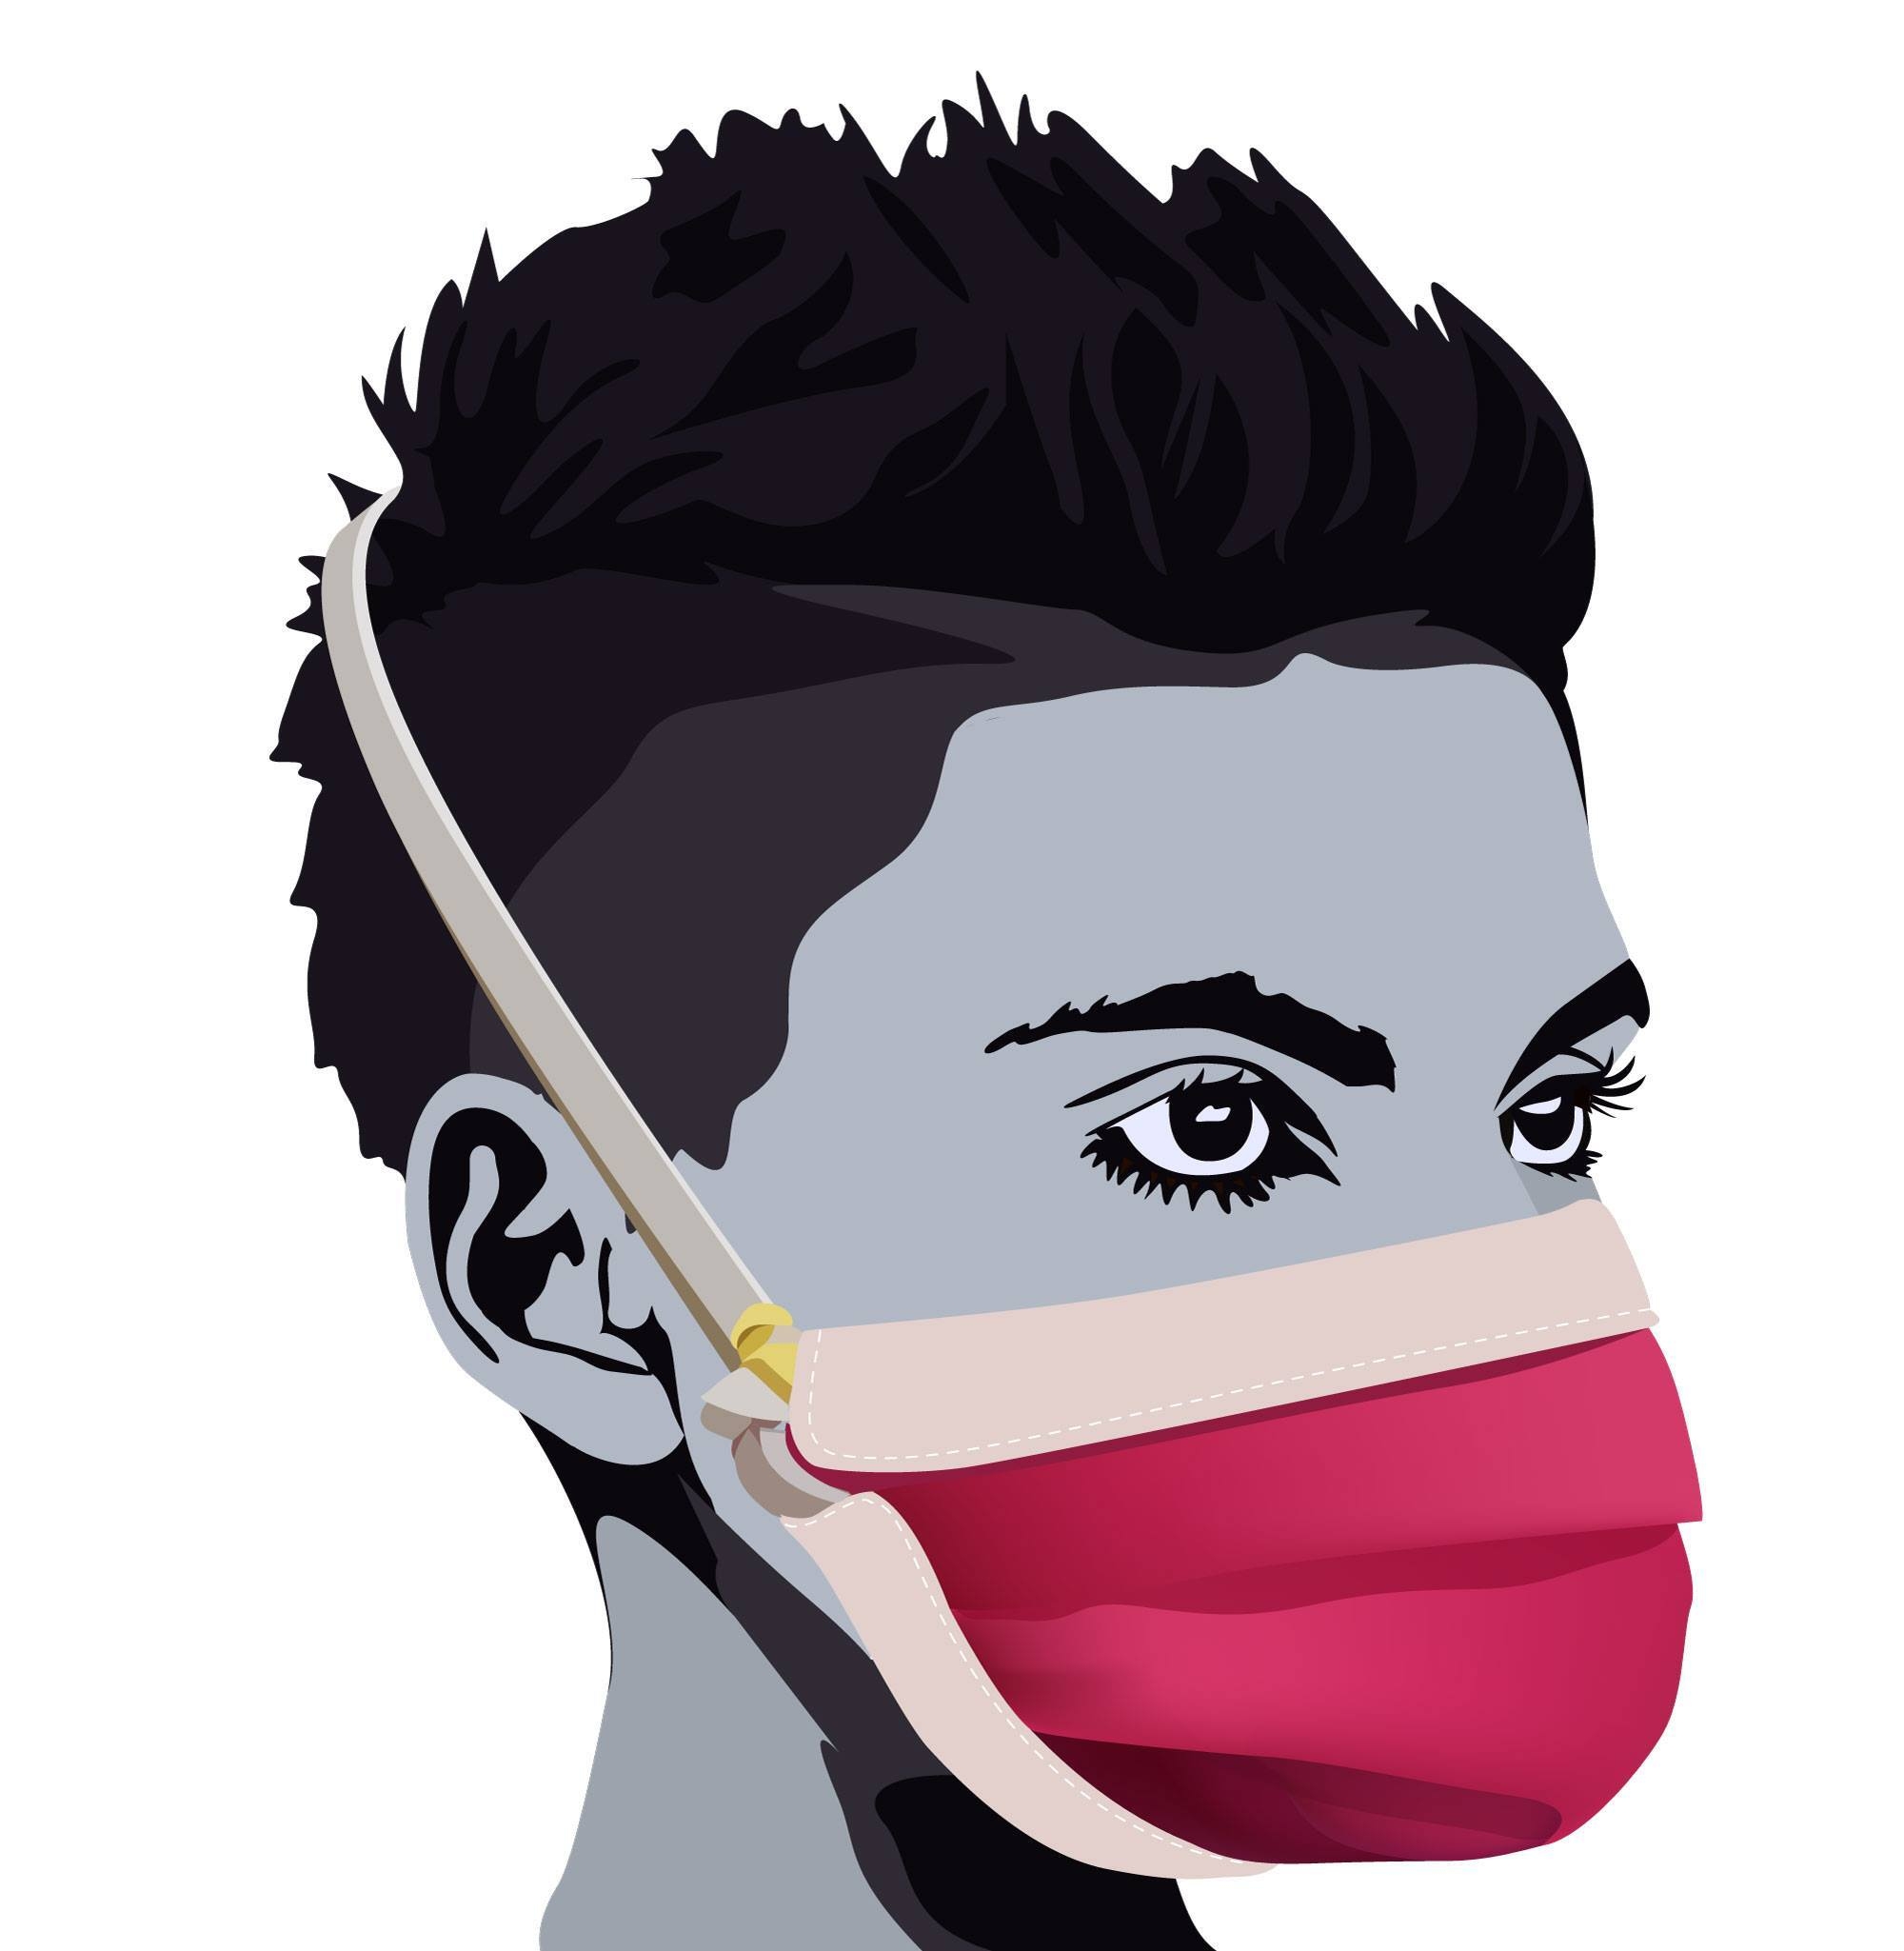 Illustration of the MakerMask: Origami Mask